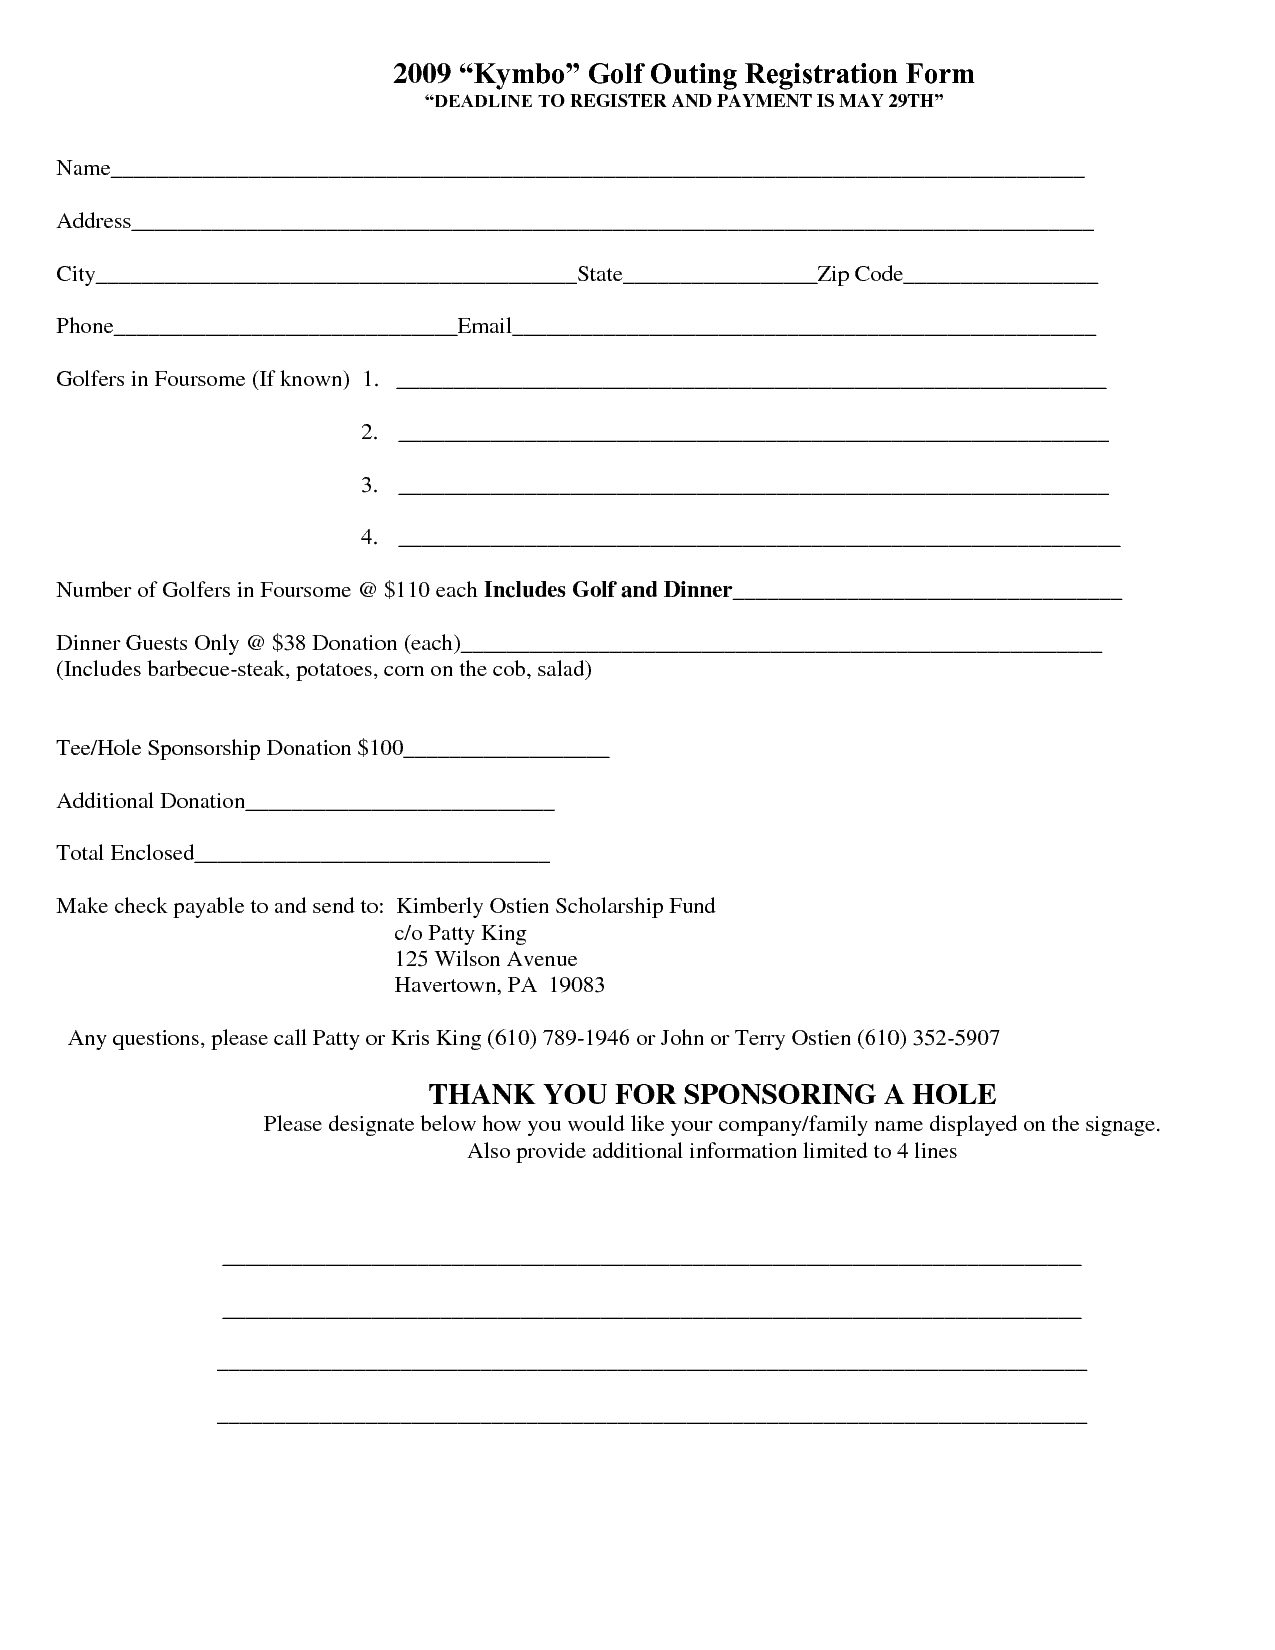 registration form templates for word